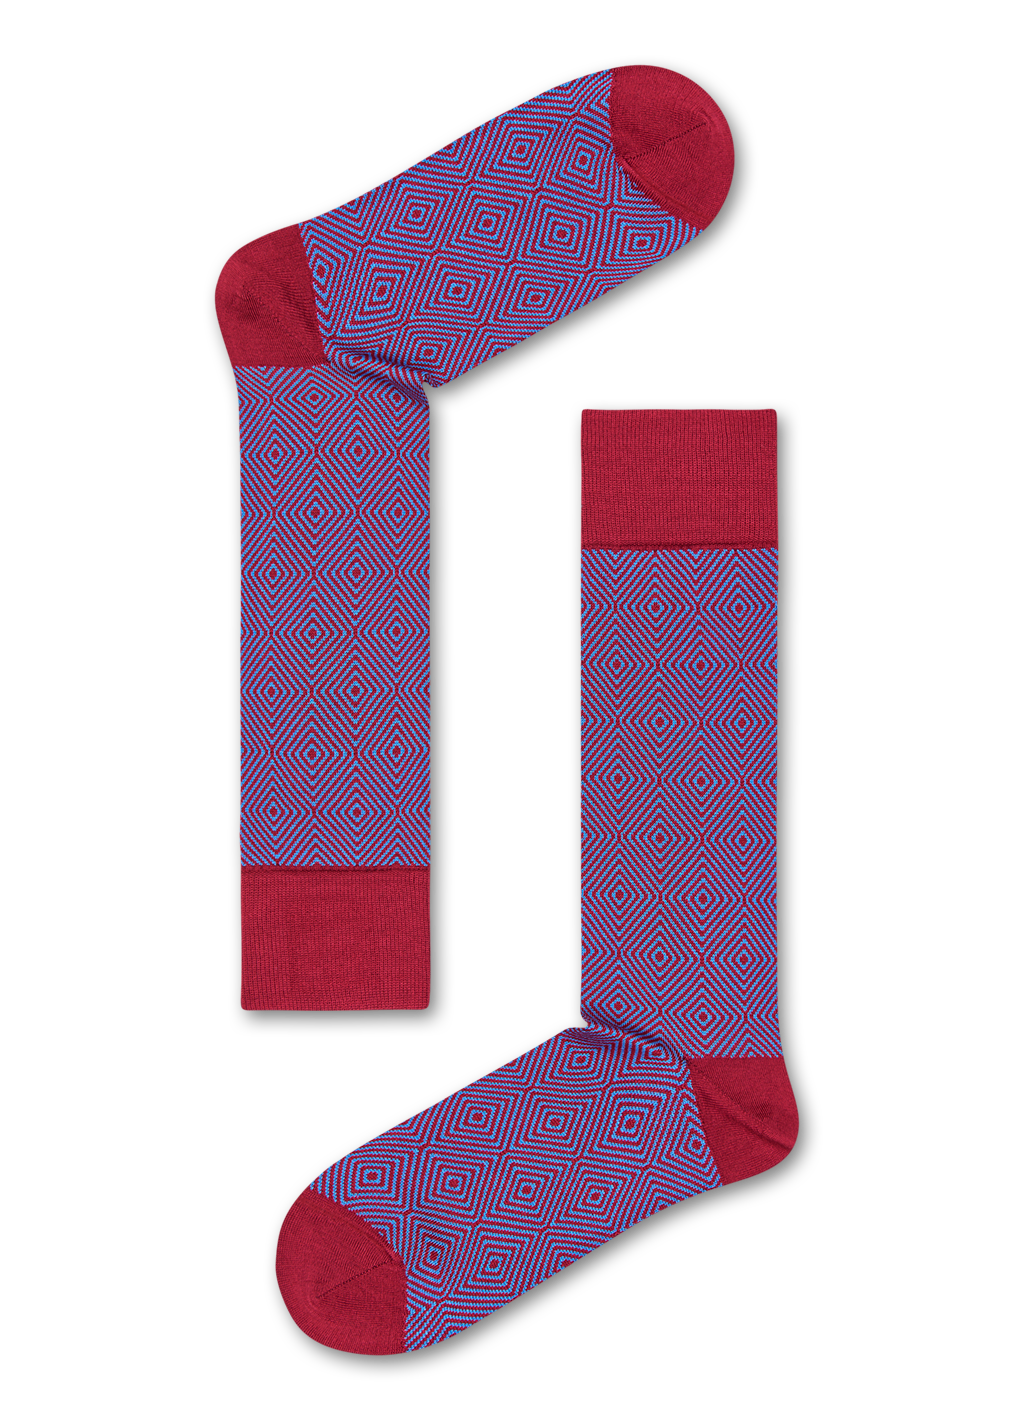 Chaussettes habillées Dressed Goose Eye, Taille 43-46